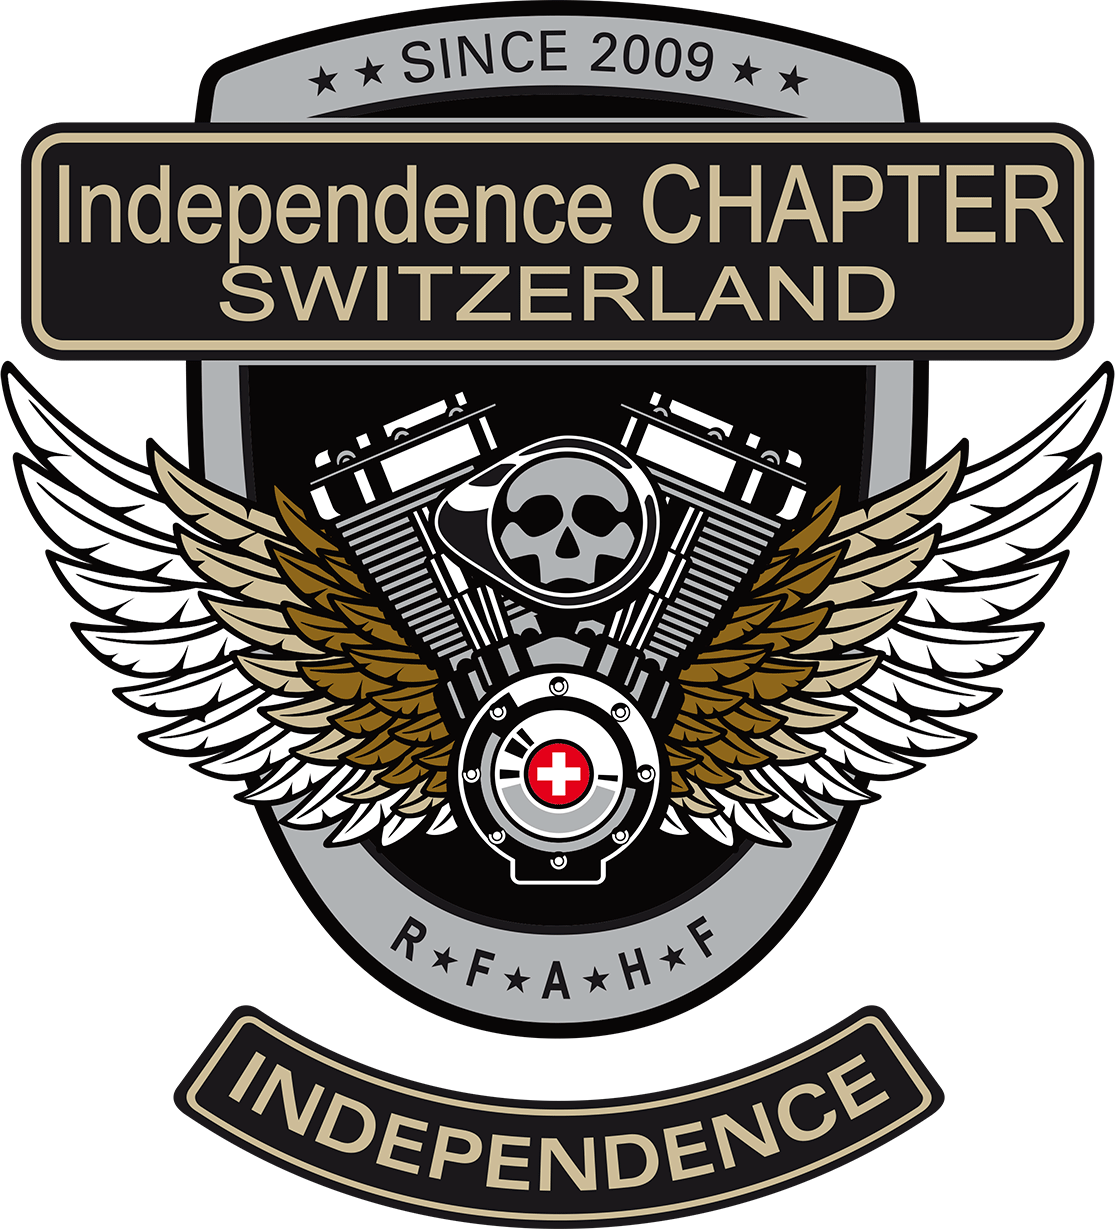 Confederates Chapter Switzerland